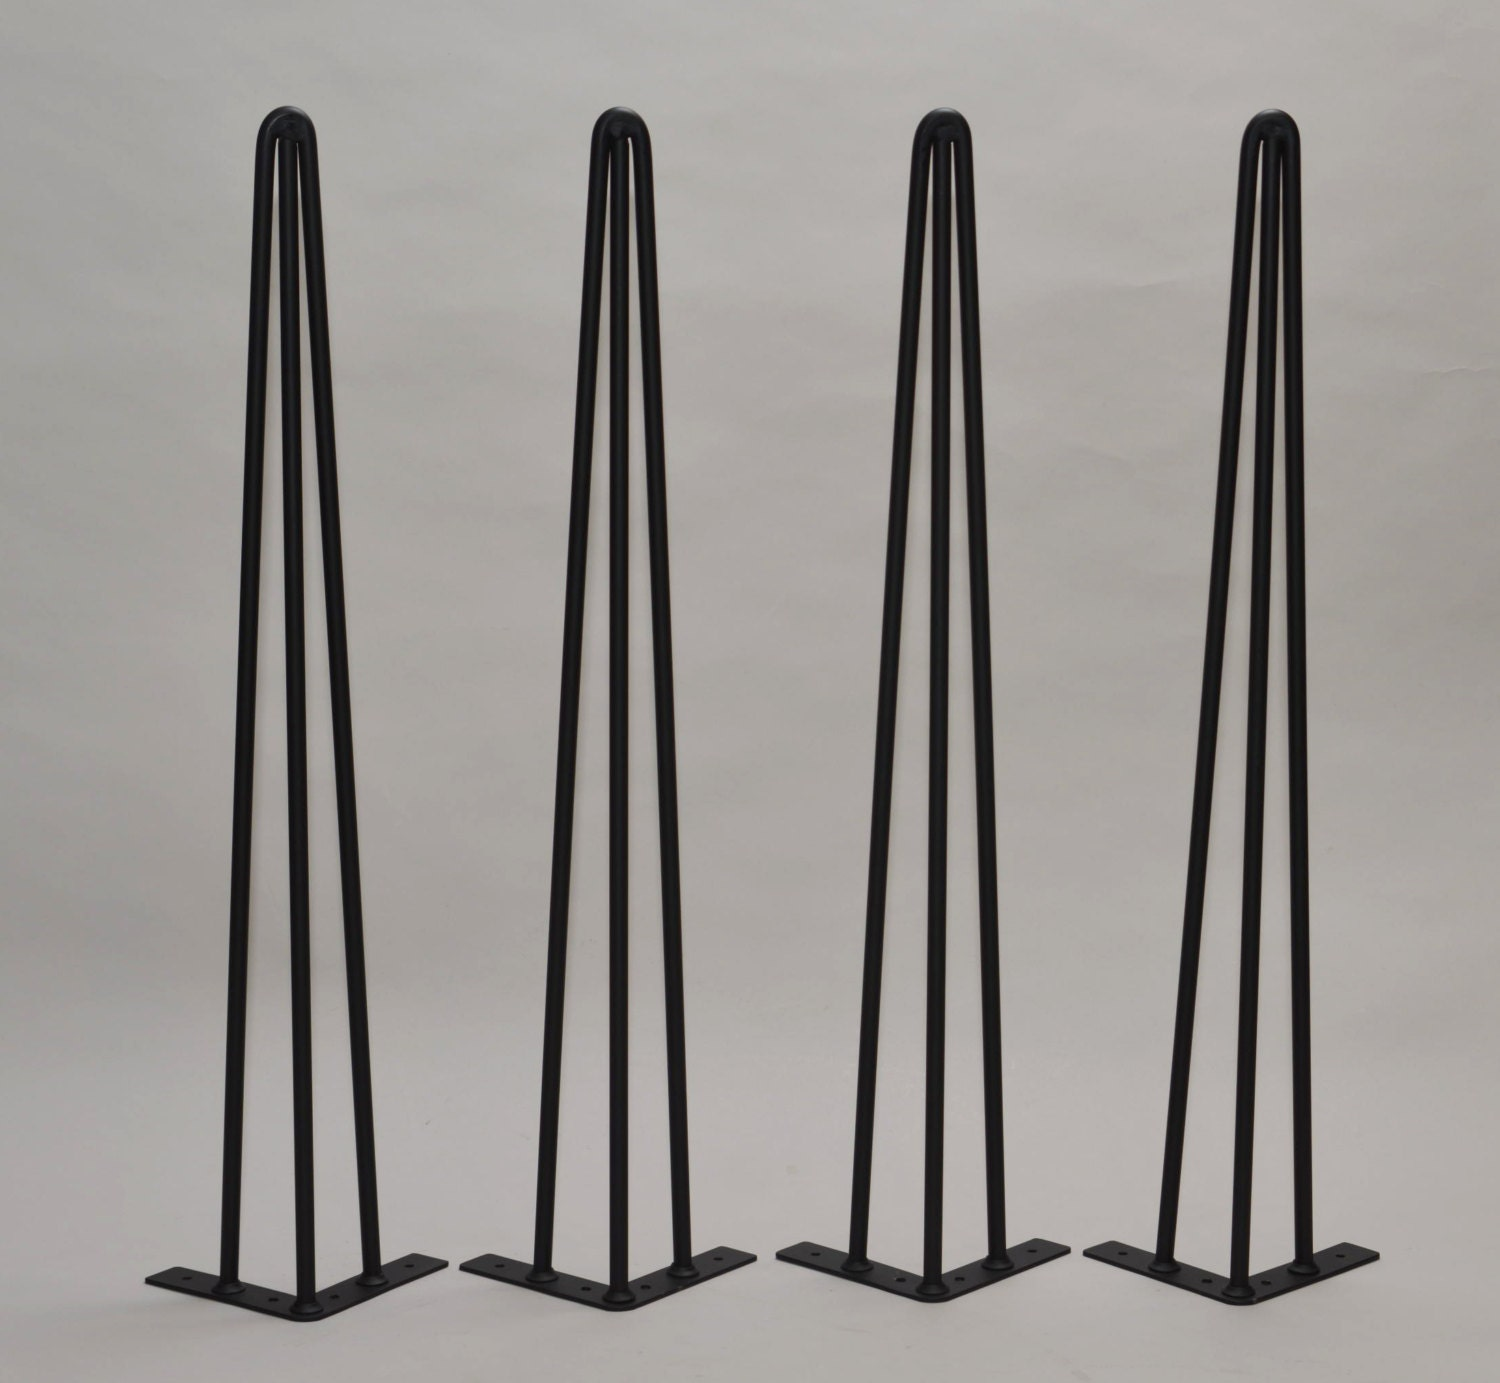 28 eames era hairpin legs vintage mid century table by studioaxis. Black Bedroom Furniture Sets. Home Design Ideas